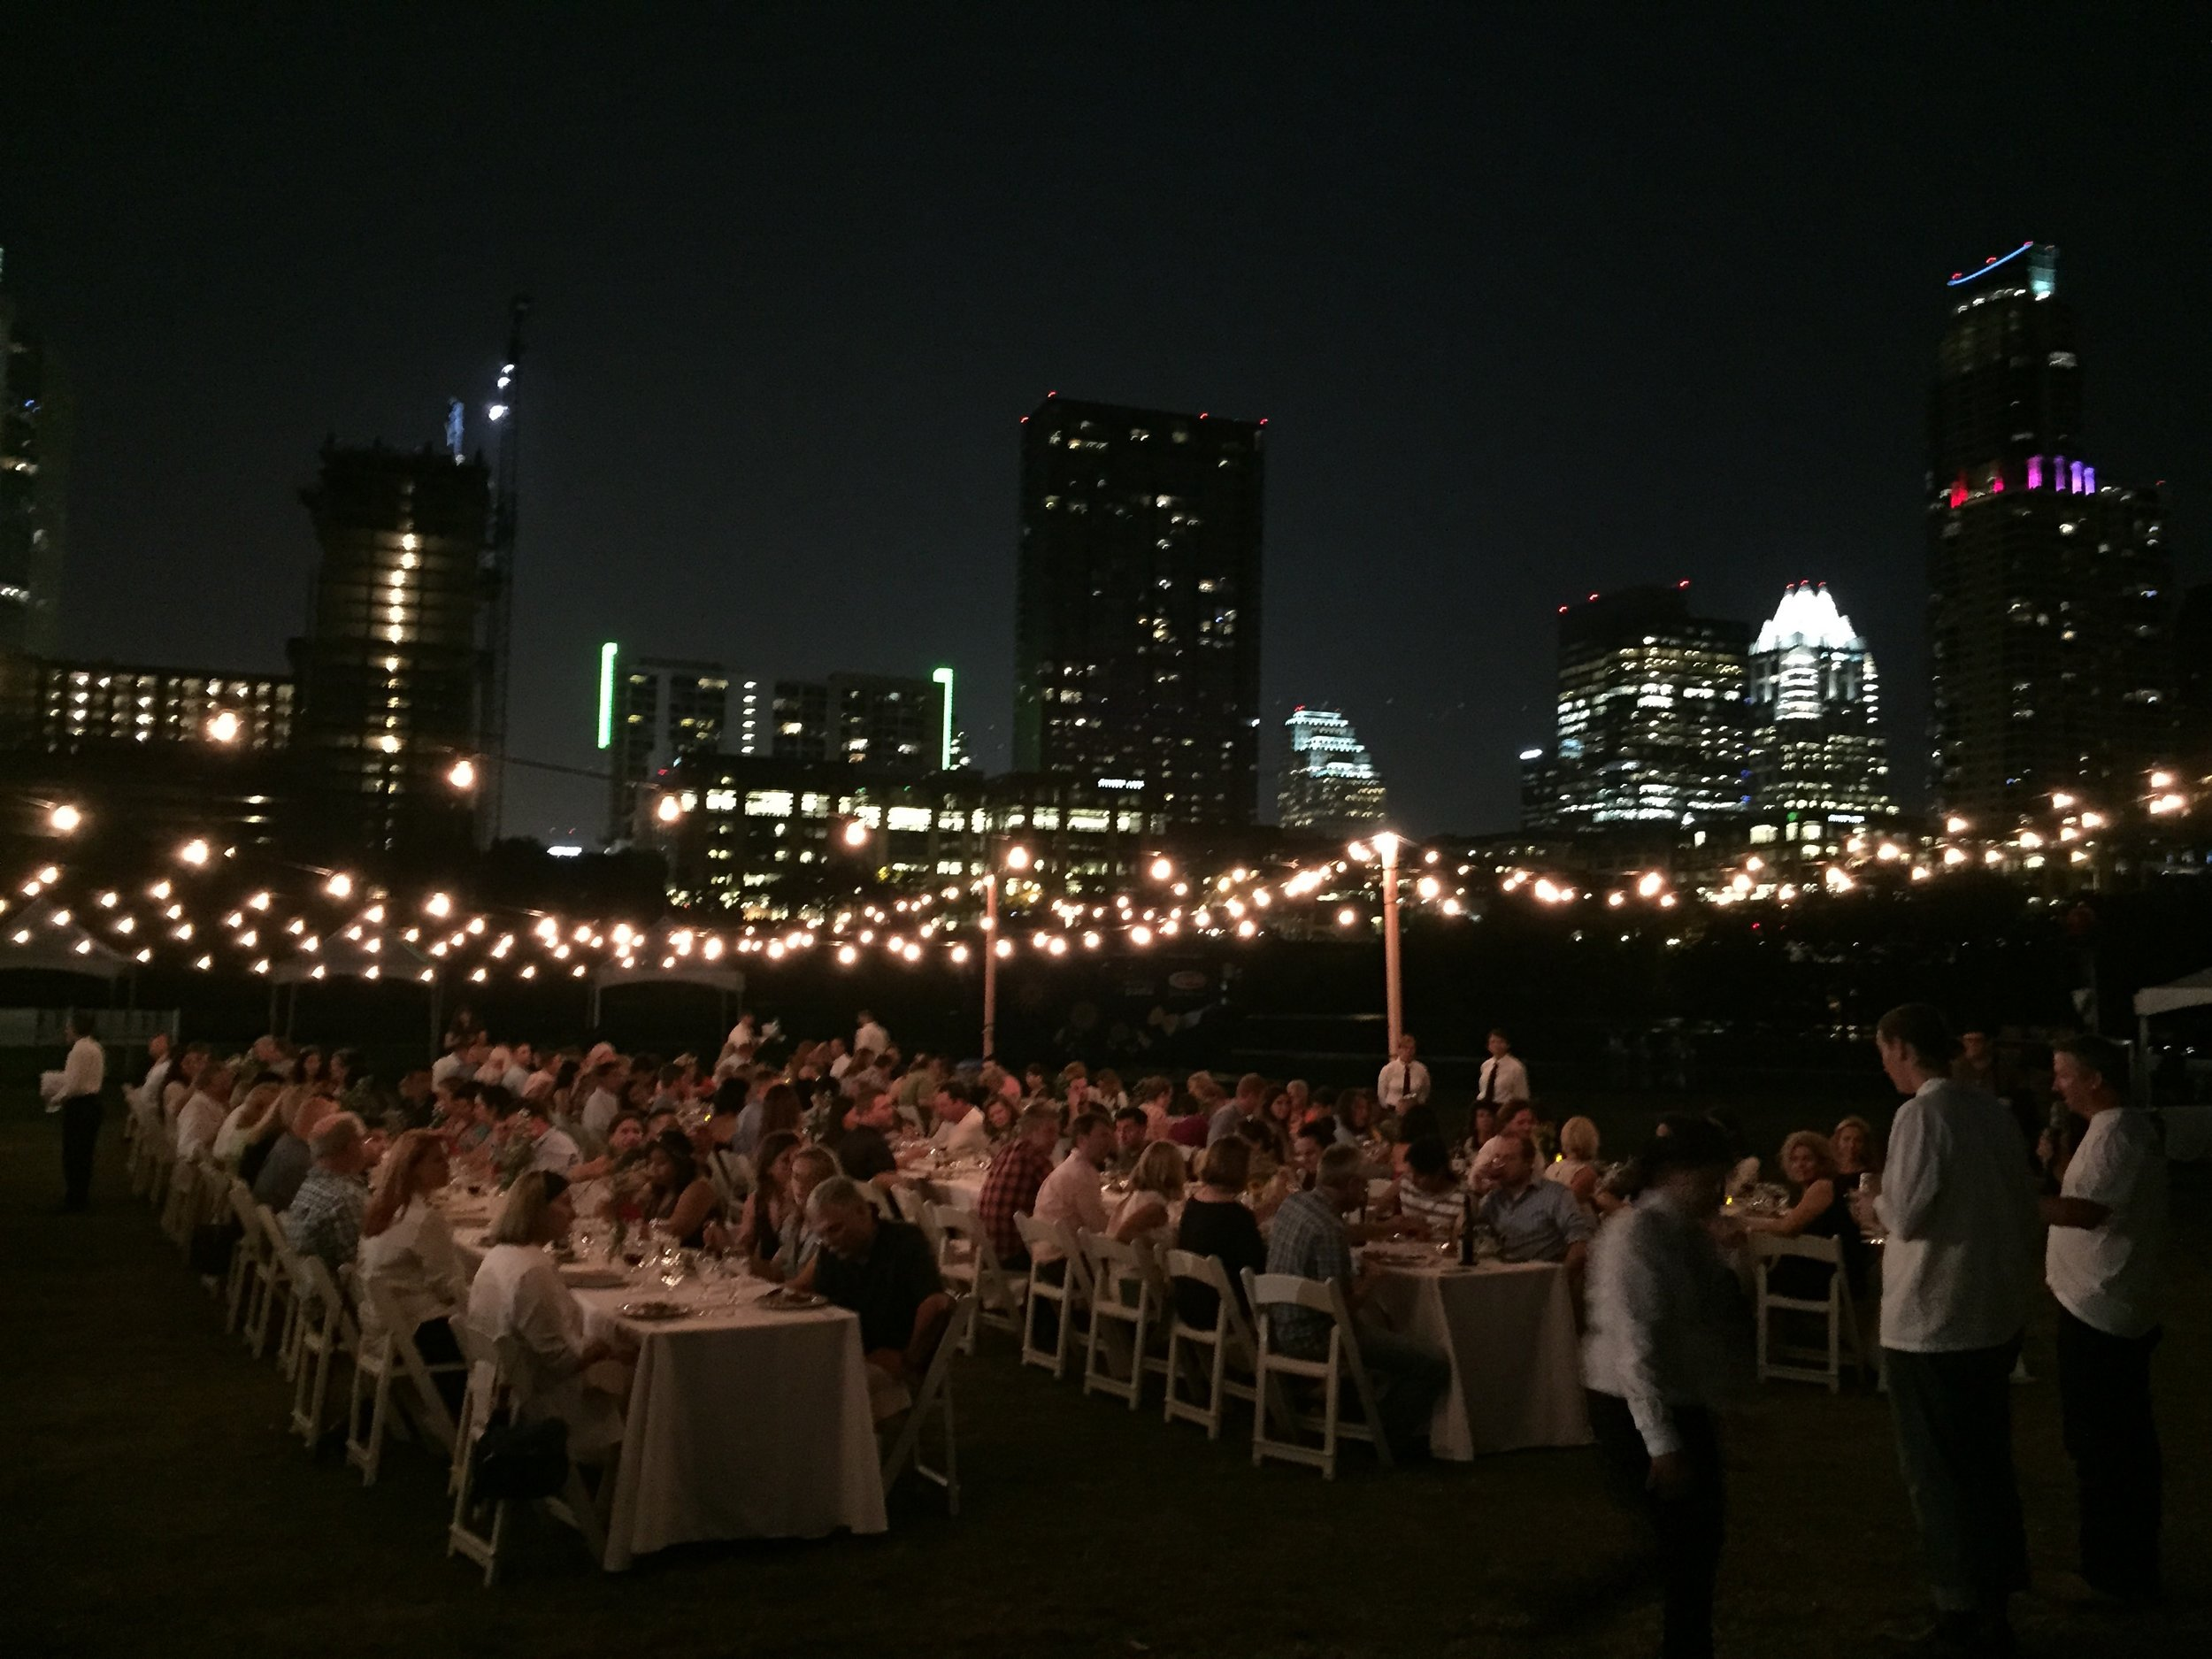 Feast Under the Stars 2014 & 2015    (chef talent & culinary operations management)   Five inspiring chefs collaborated on a multiple-course wine pairing feast with the iconic Austin city skyline behind them.